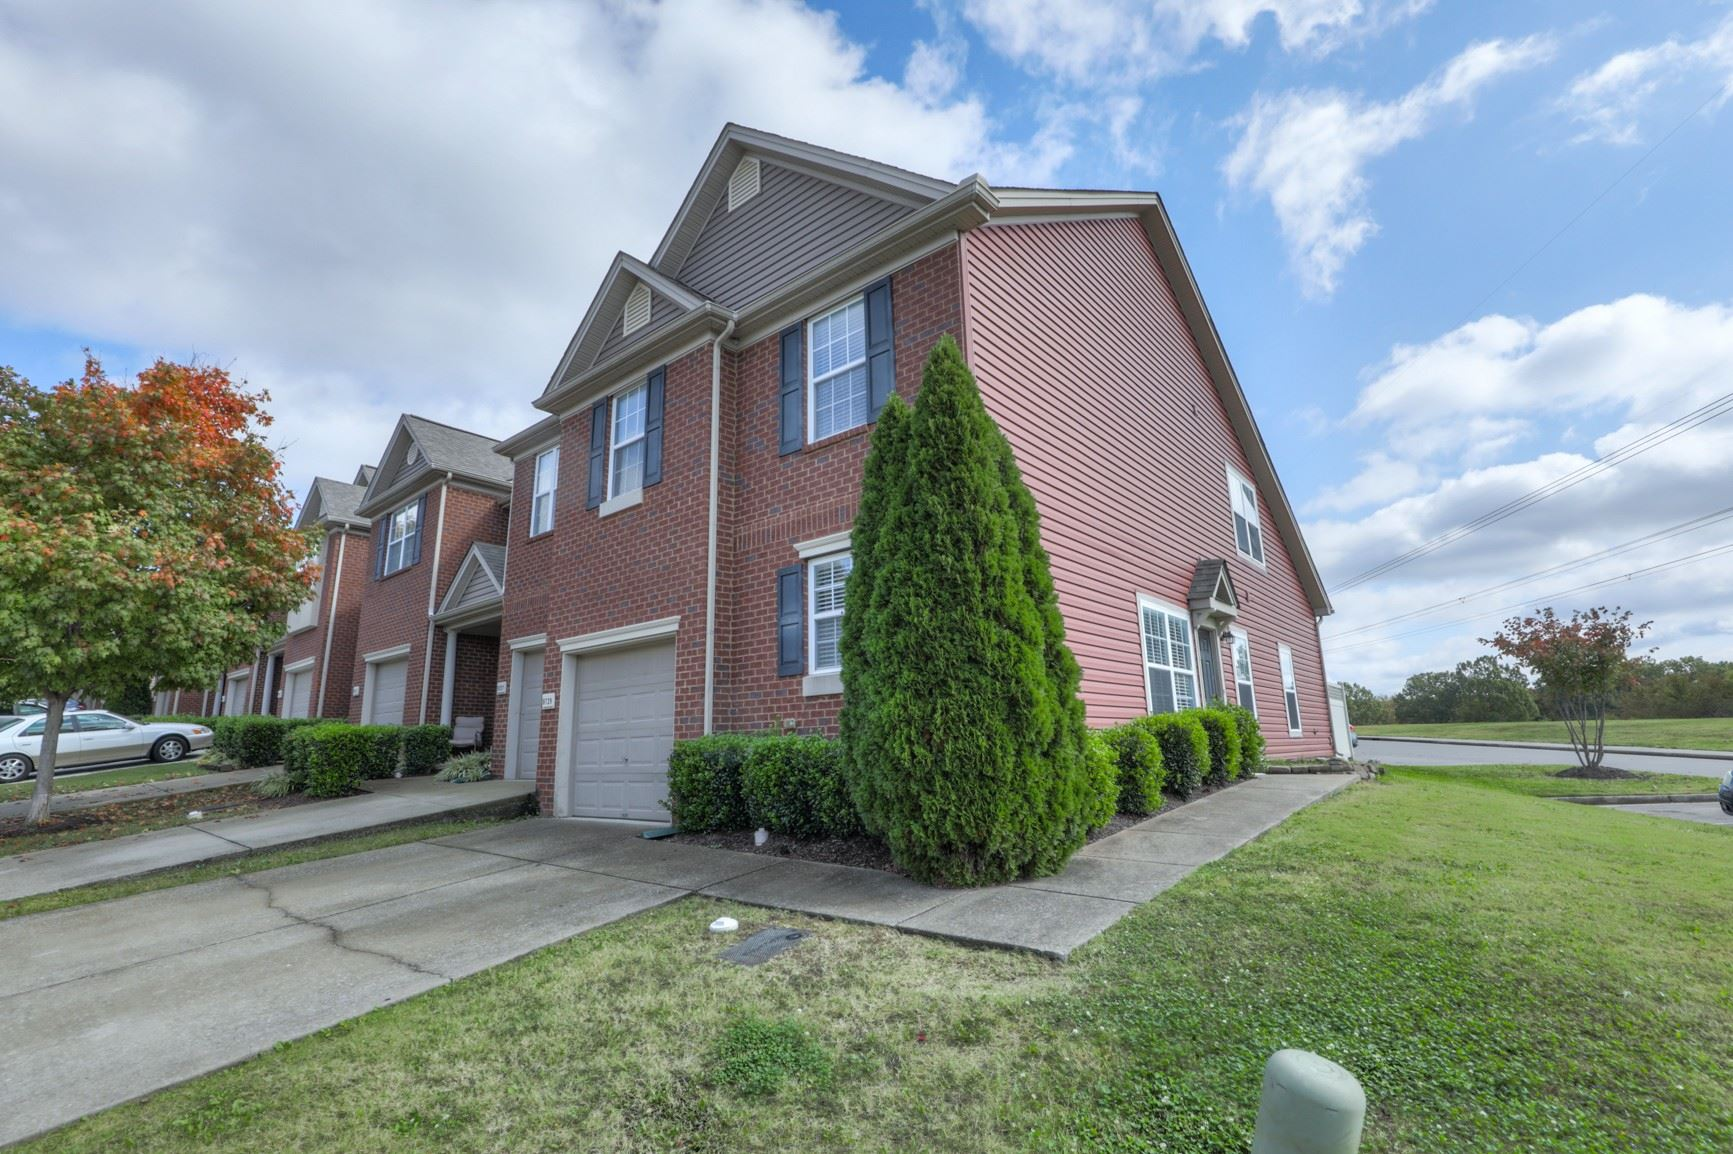 8729 Ambonnay Dr, Brentwood, TN 37027 - MLS#: 2197476